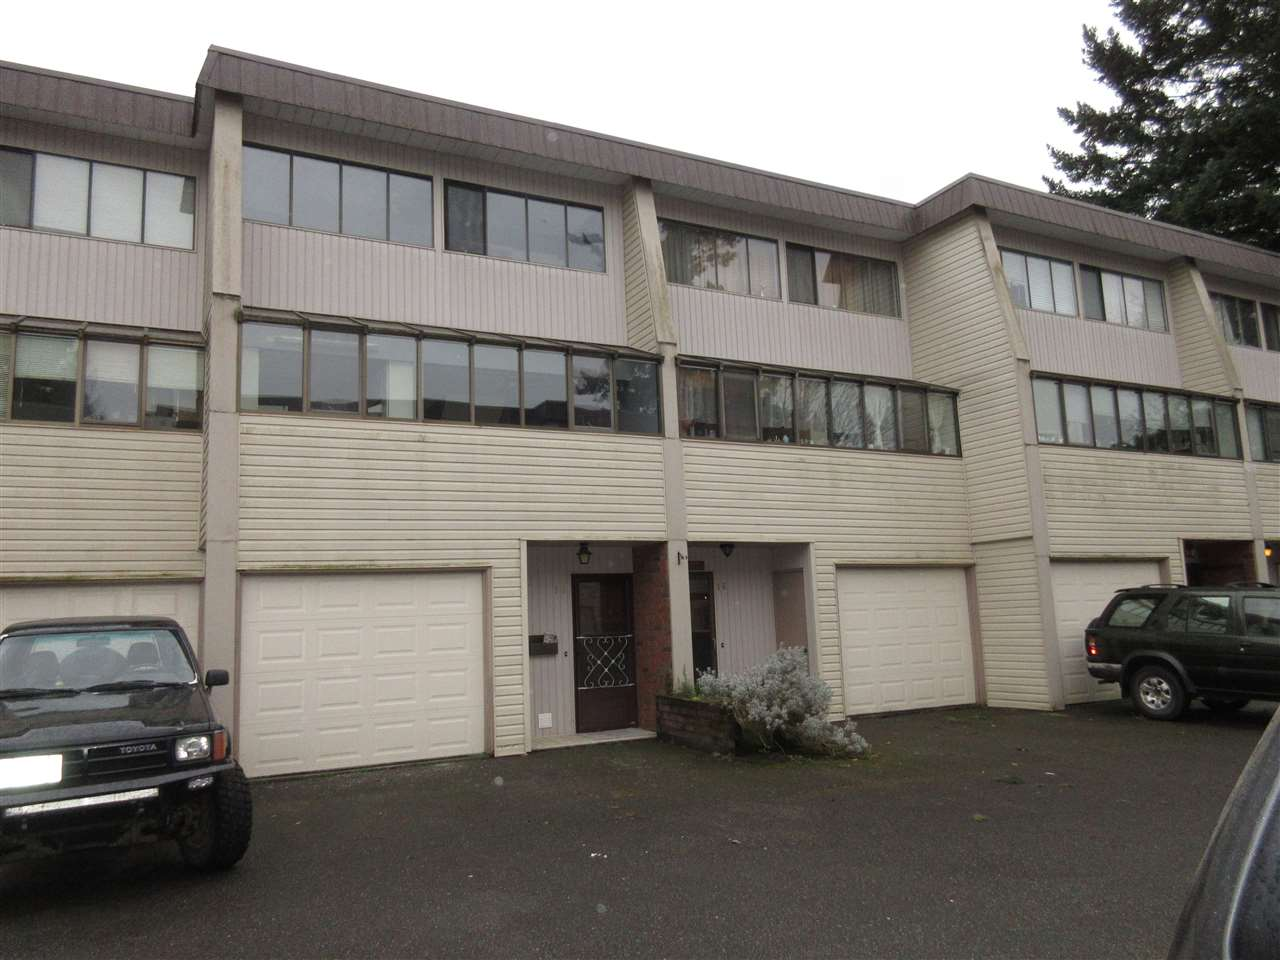 "Main Photo: 15 9446 HAZEL Street in Chilliwack: Chilliwack E Young-Yale Townhouse for sale in ""Delong Gardens"" : MLS® # R2042459"